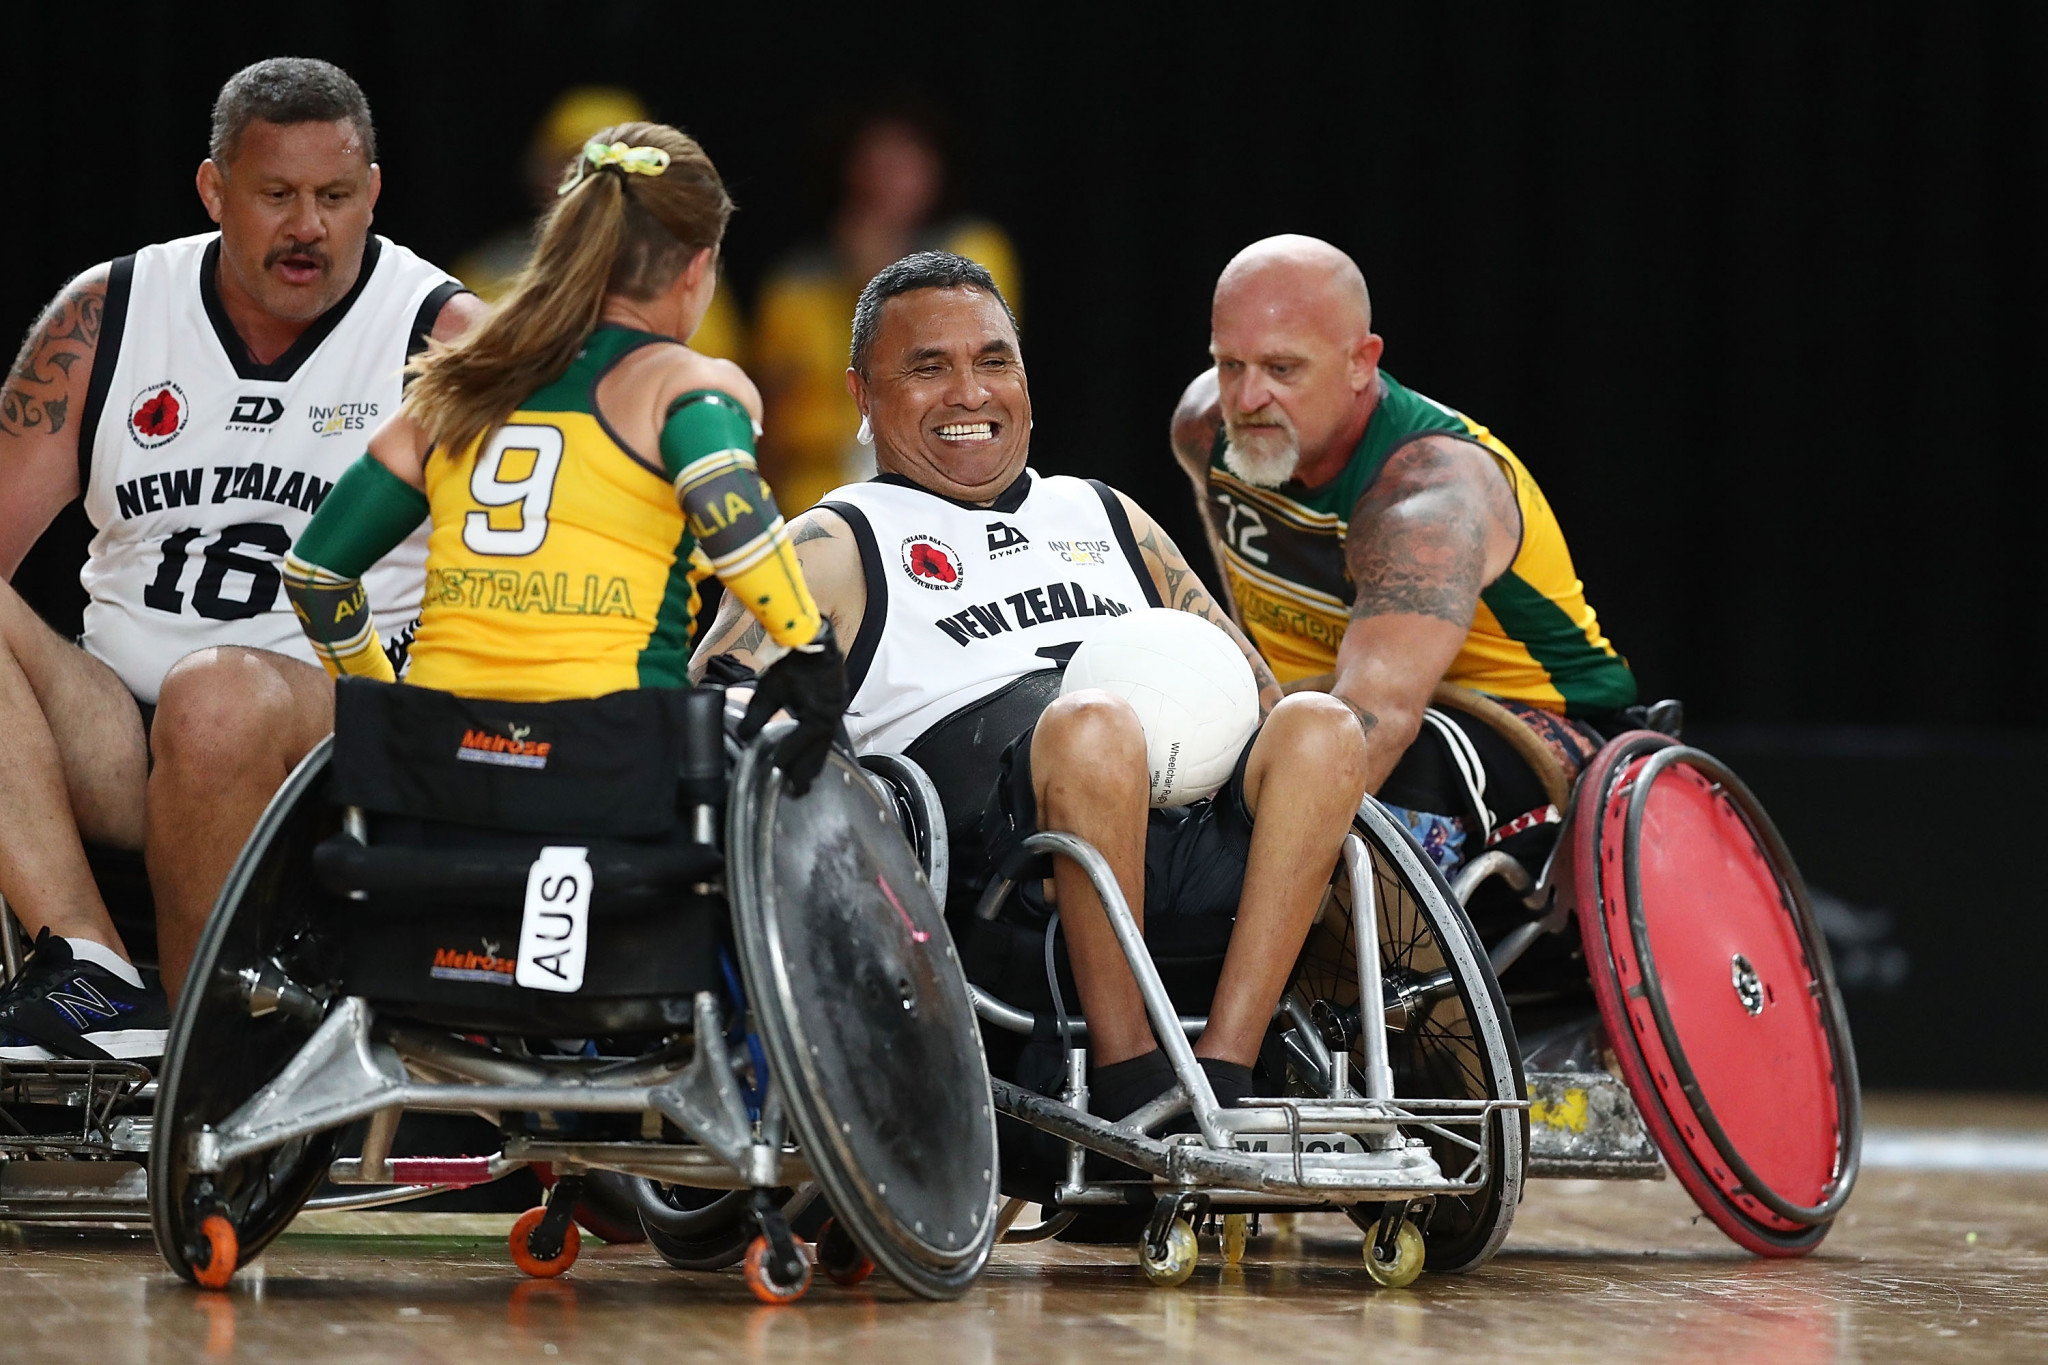 Wheelchair rugby to make World Games debut as invitational sports confirmed